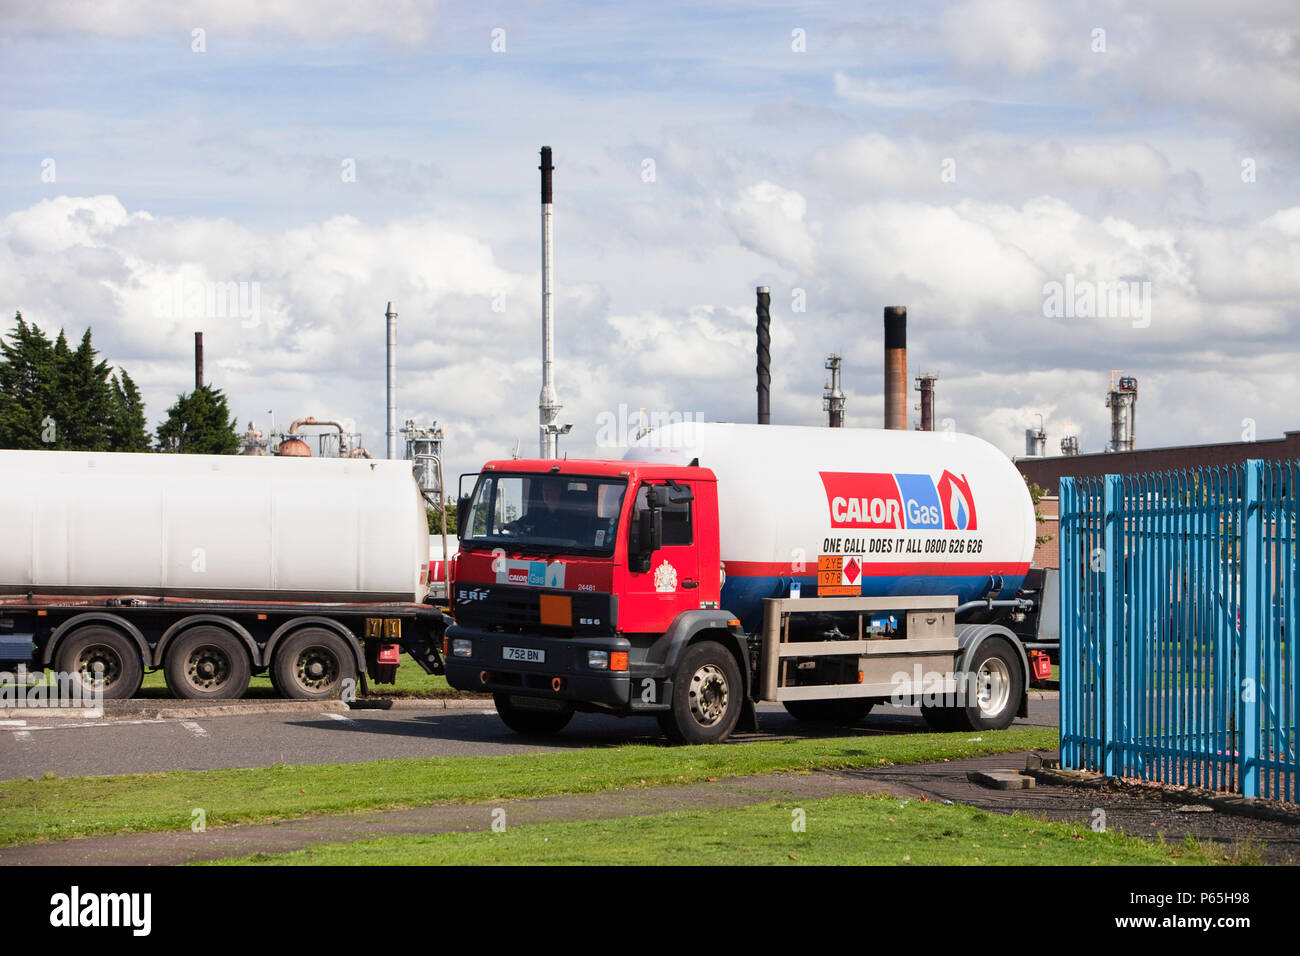 Calor gas lorry at the Ineos oil refinery in Grangemouth Scotland, UK. The site is responsible for massive C02 emissions. - Stock Image